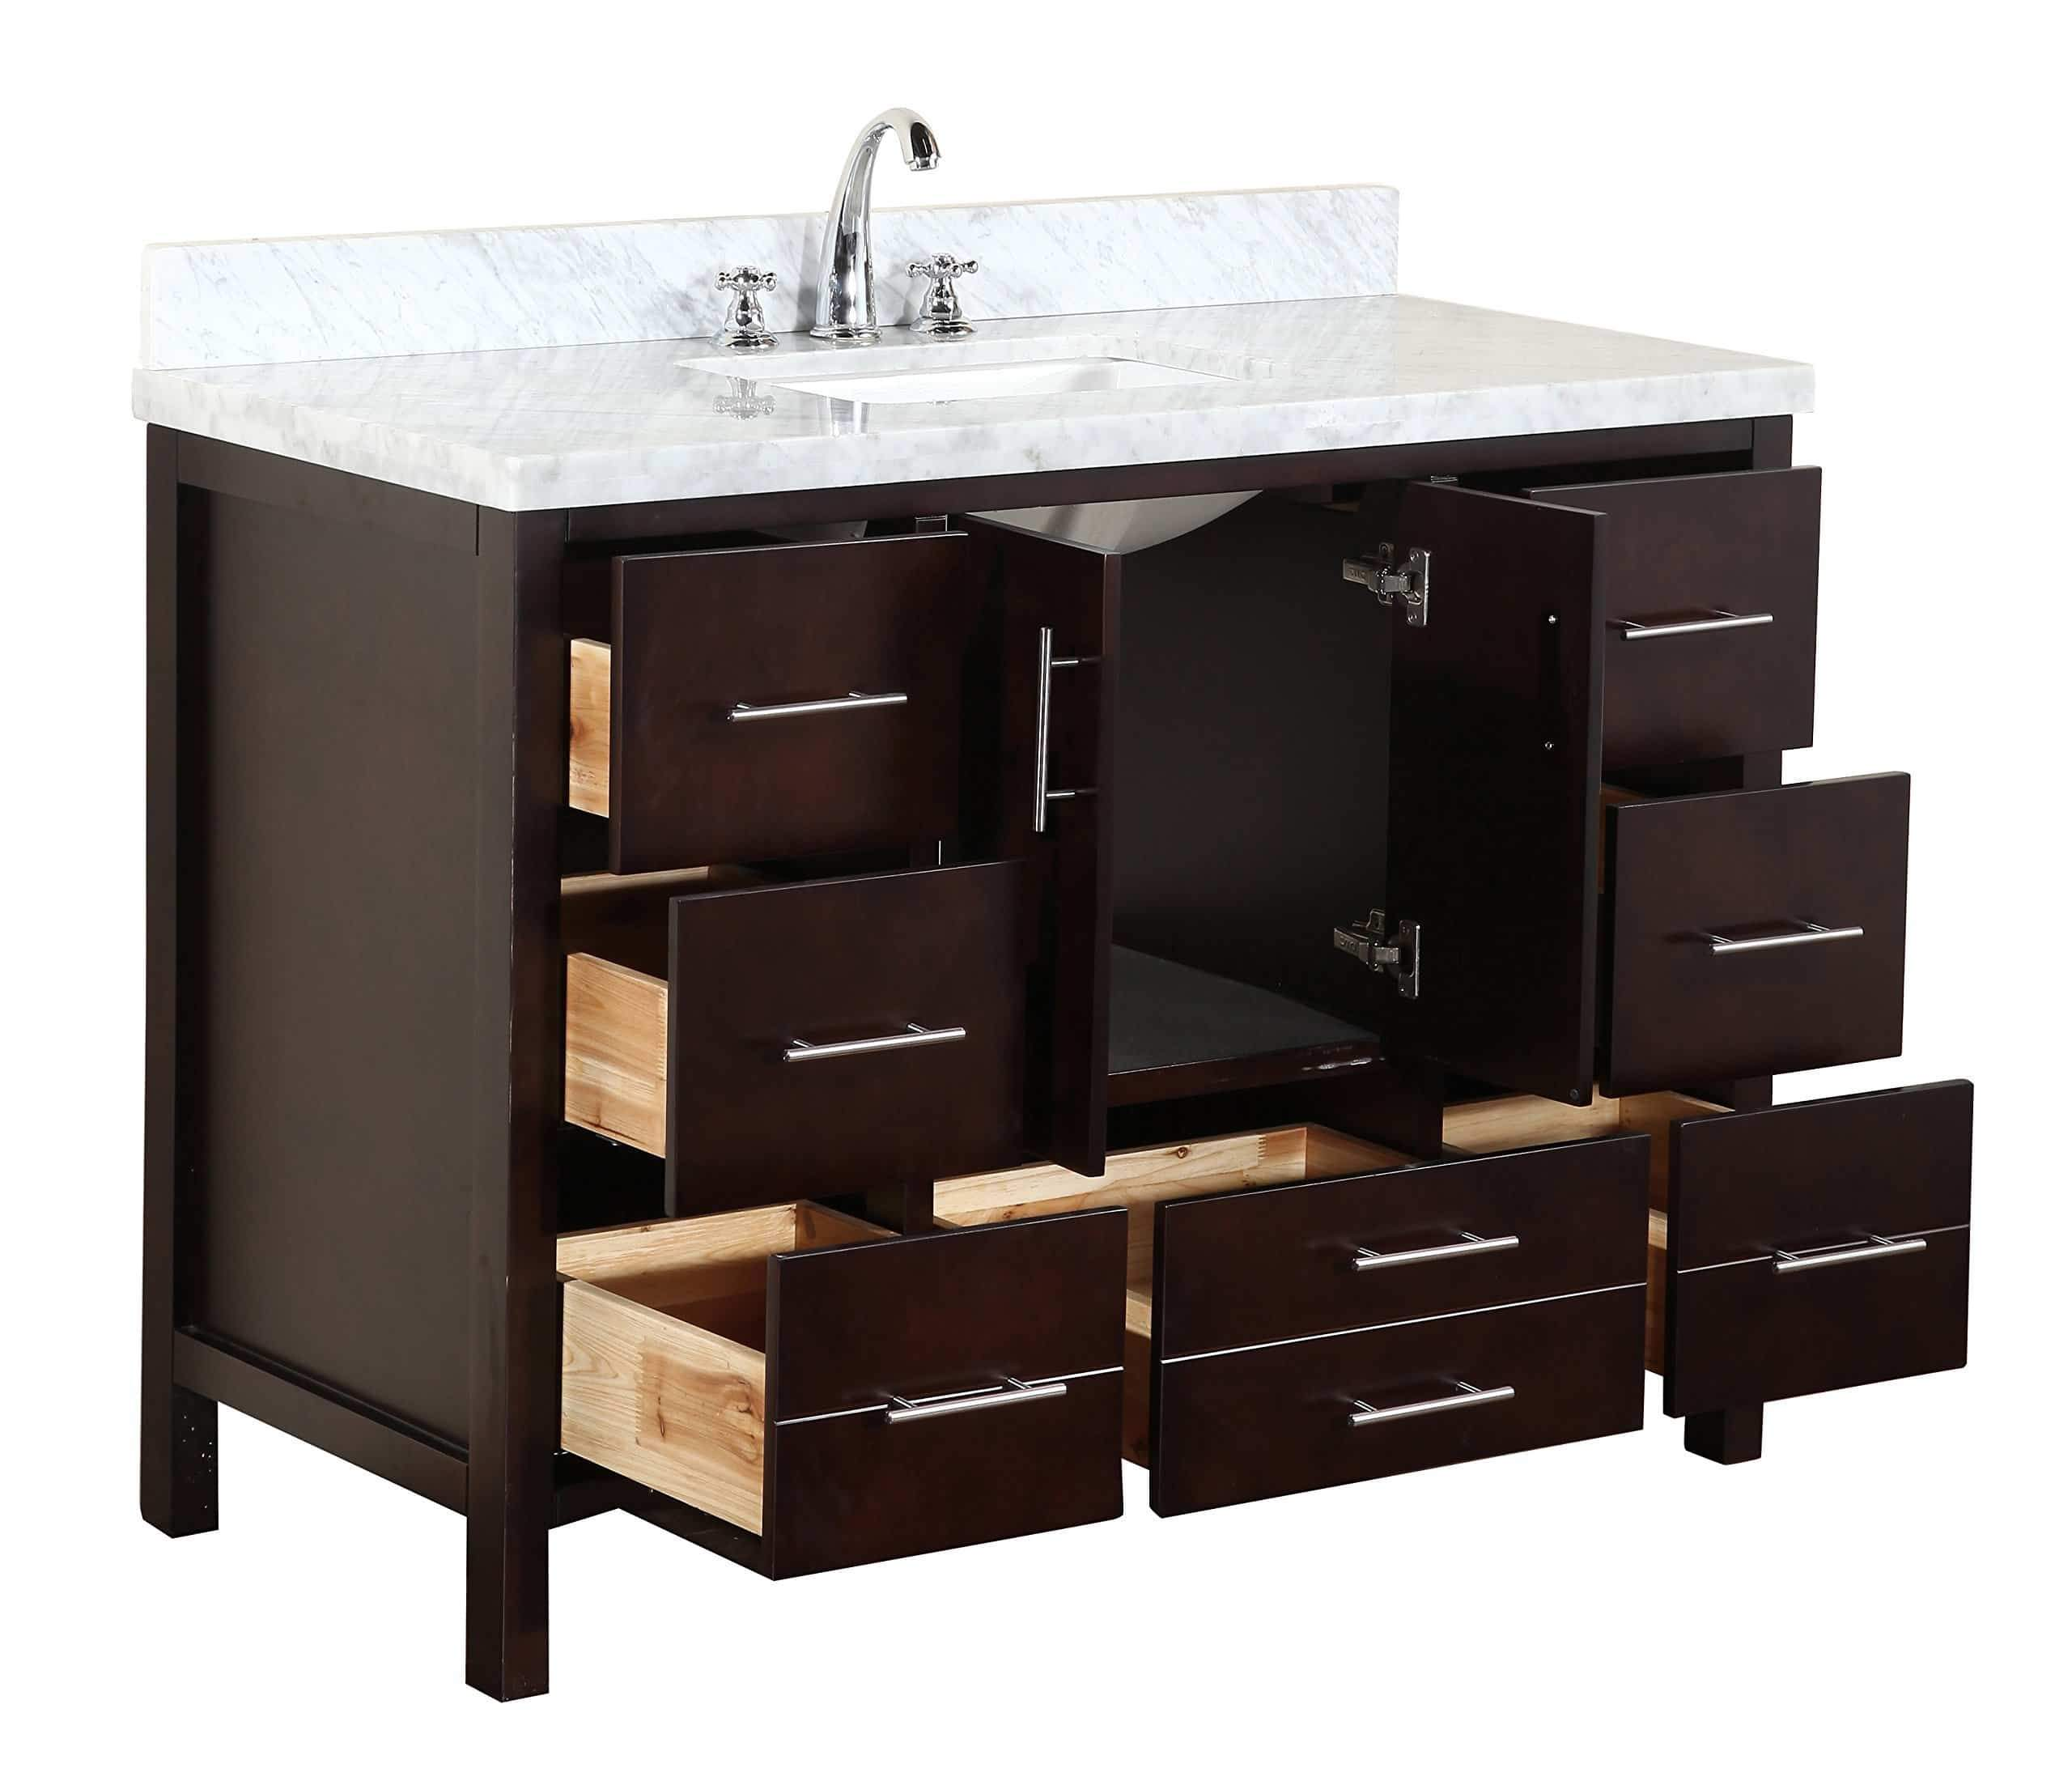 Purchase kitchen bath collection kbc039brcarr california bathroom vanity with marble countertop cabinet with soft close function and undermount ceramic sink carrara chocolate 48